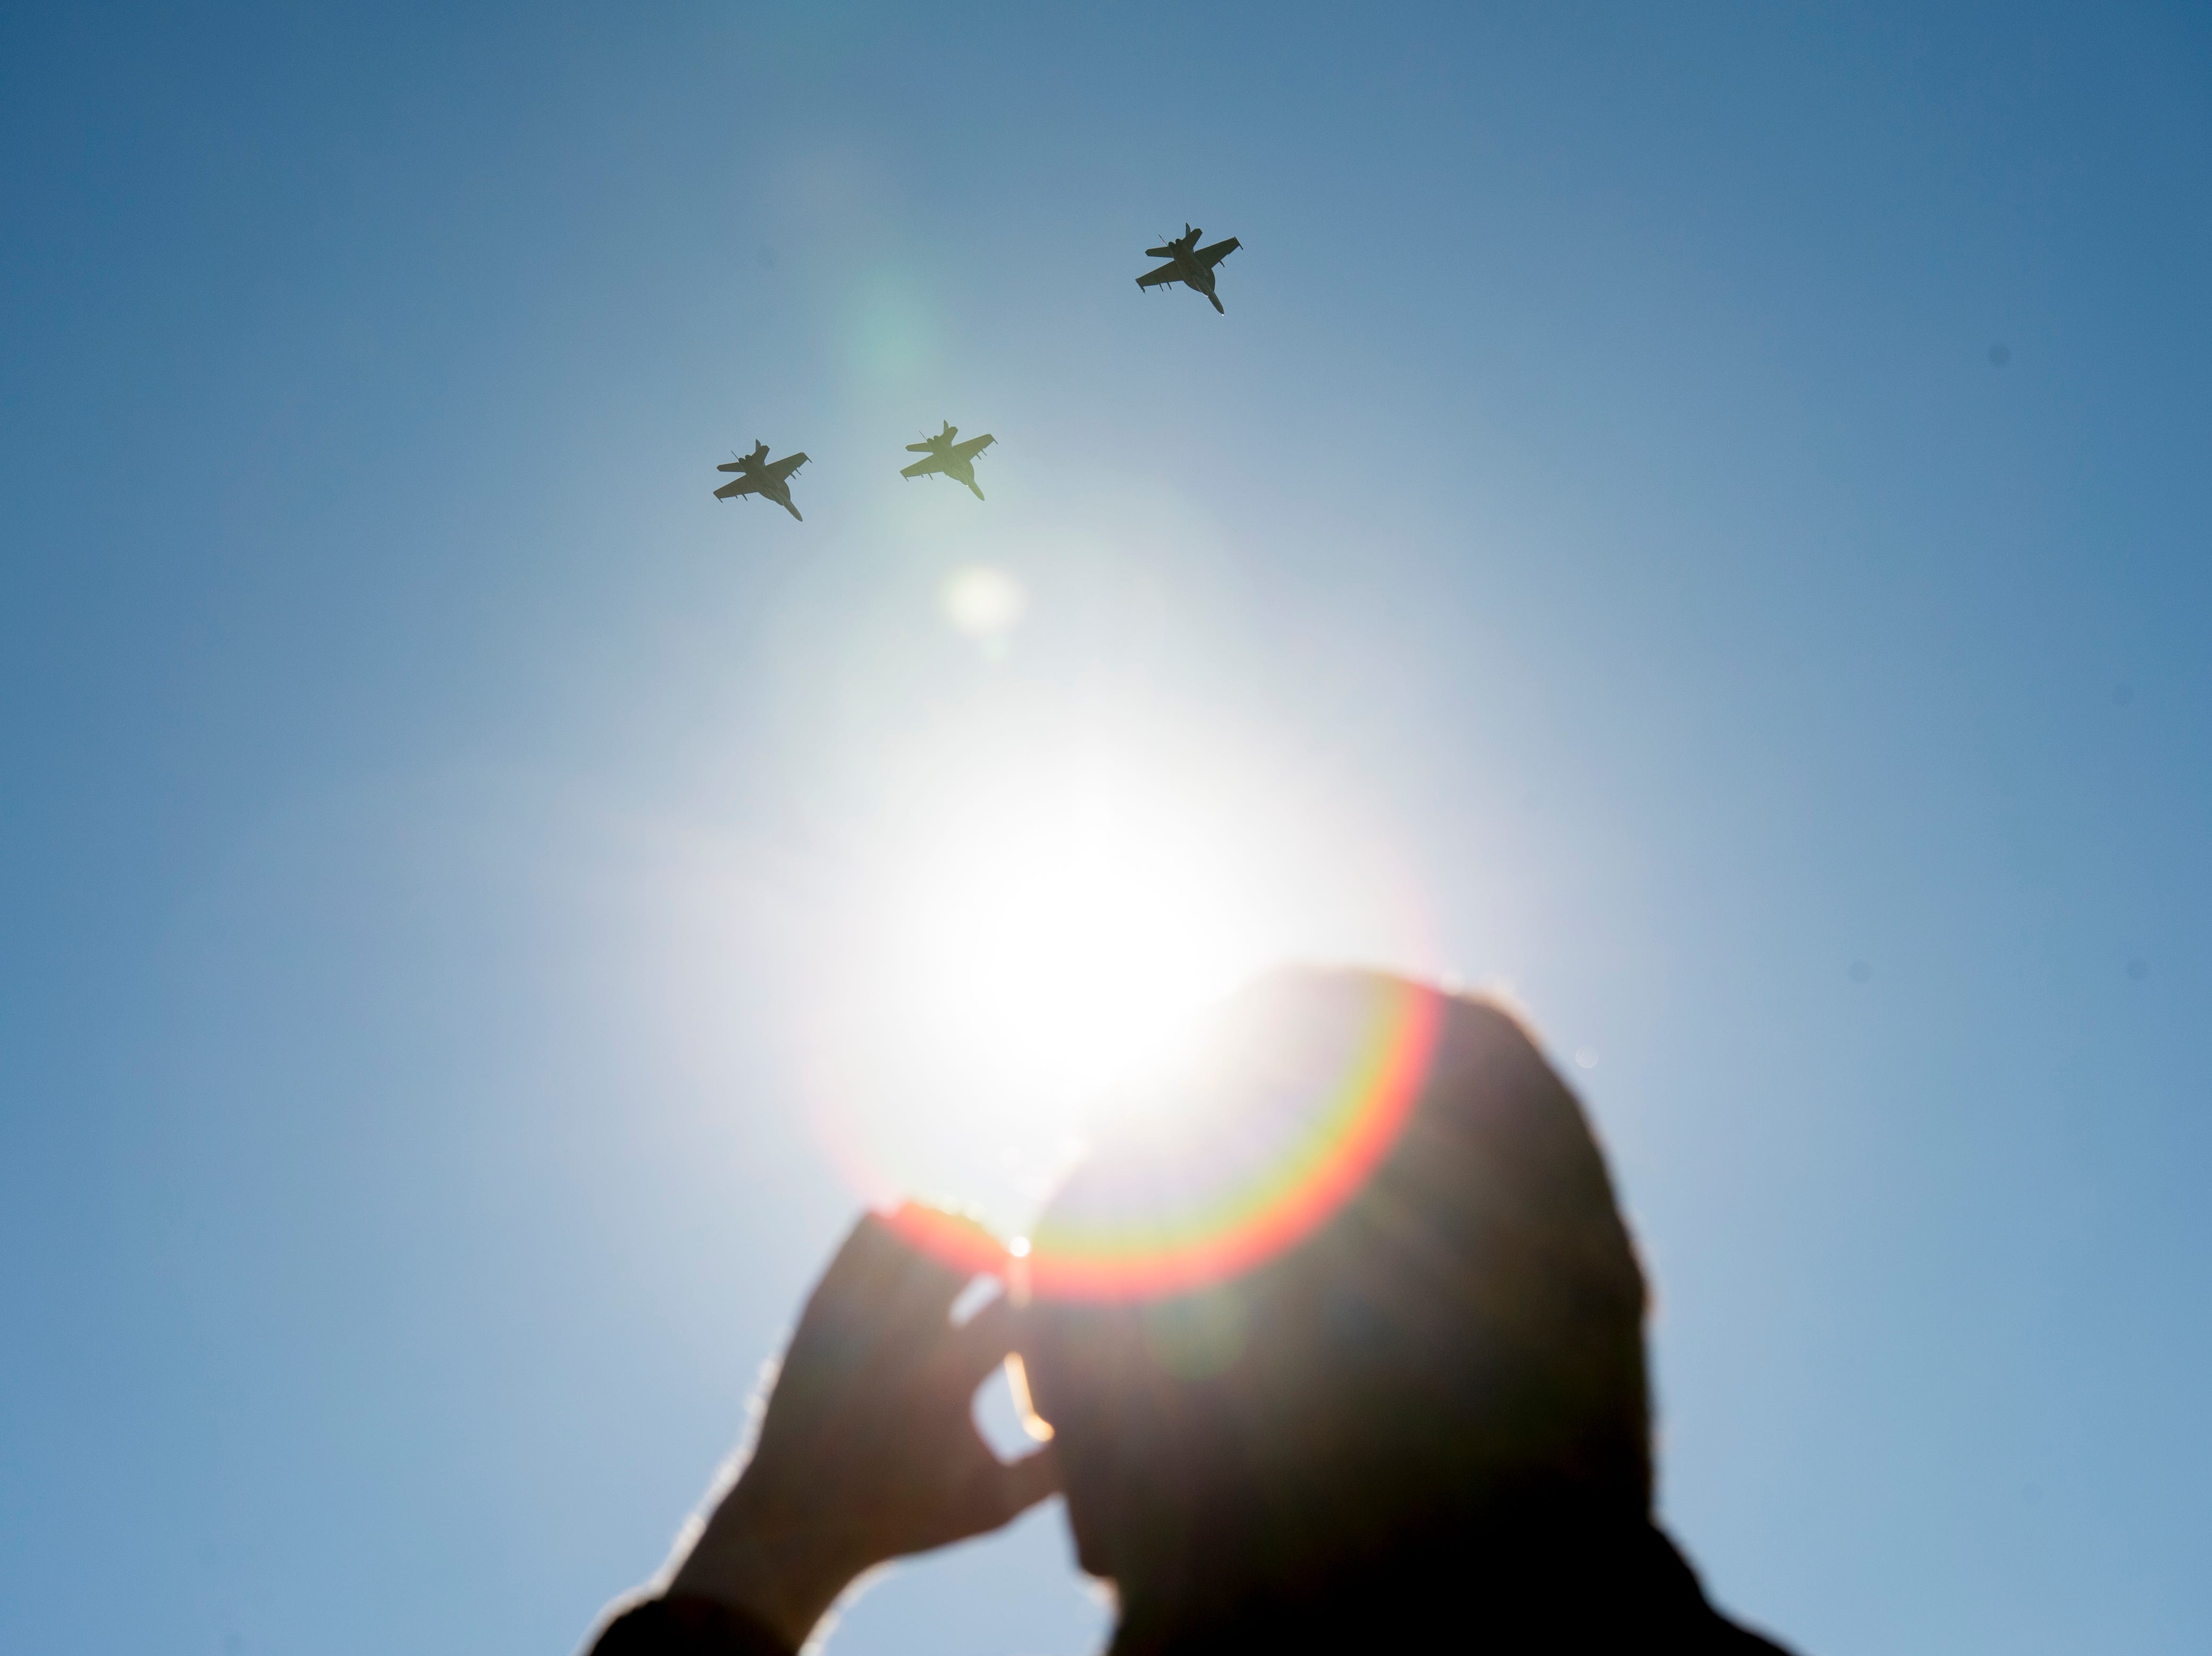 Three of the four fighter jets fly above a graveside service for Rosemary Mariner, the US Navy's first female fighter pilot, at New Loyston Cemetery in Maynardville, Tennessee on Saturday, February 2, 2019. The jets were flown by four female fighter pilots, and was the first all-female flyover by the Navy.